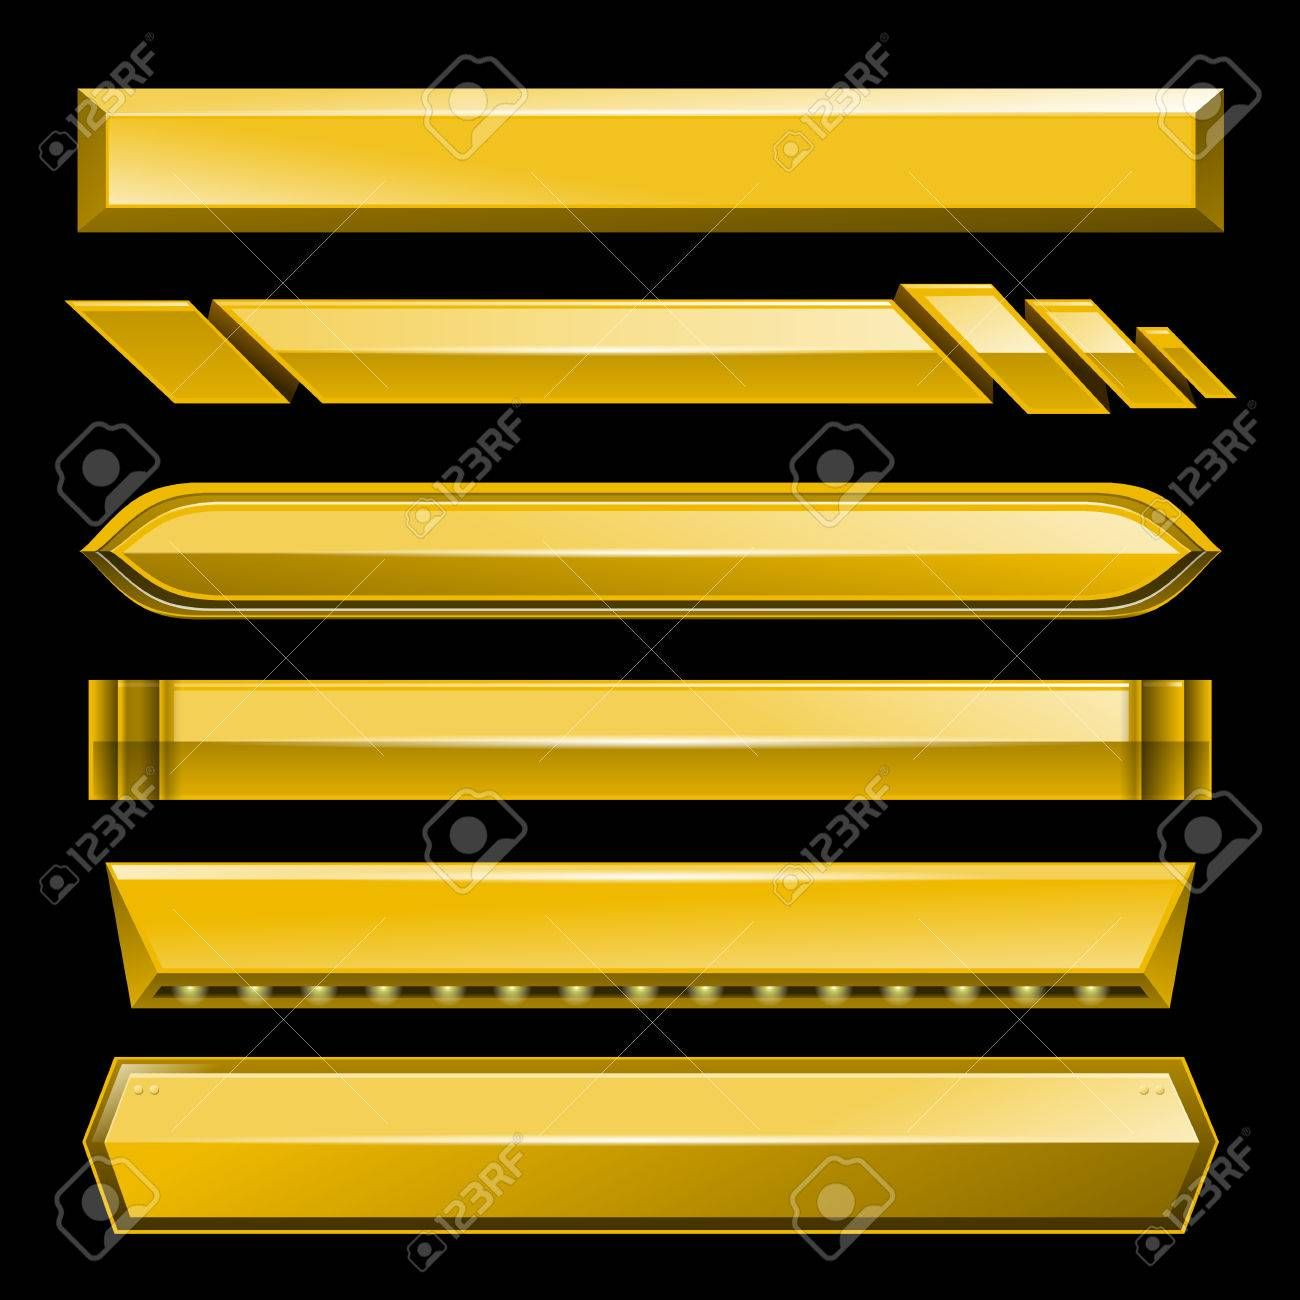 Golden Lower Third Banner Bar Screen Broadcast Vector Illustration Royalty Free Cliparts Vectors And Stock Lower Thirds Youtube Design Vector Illustration